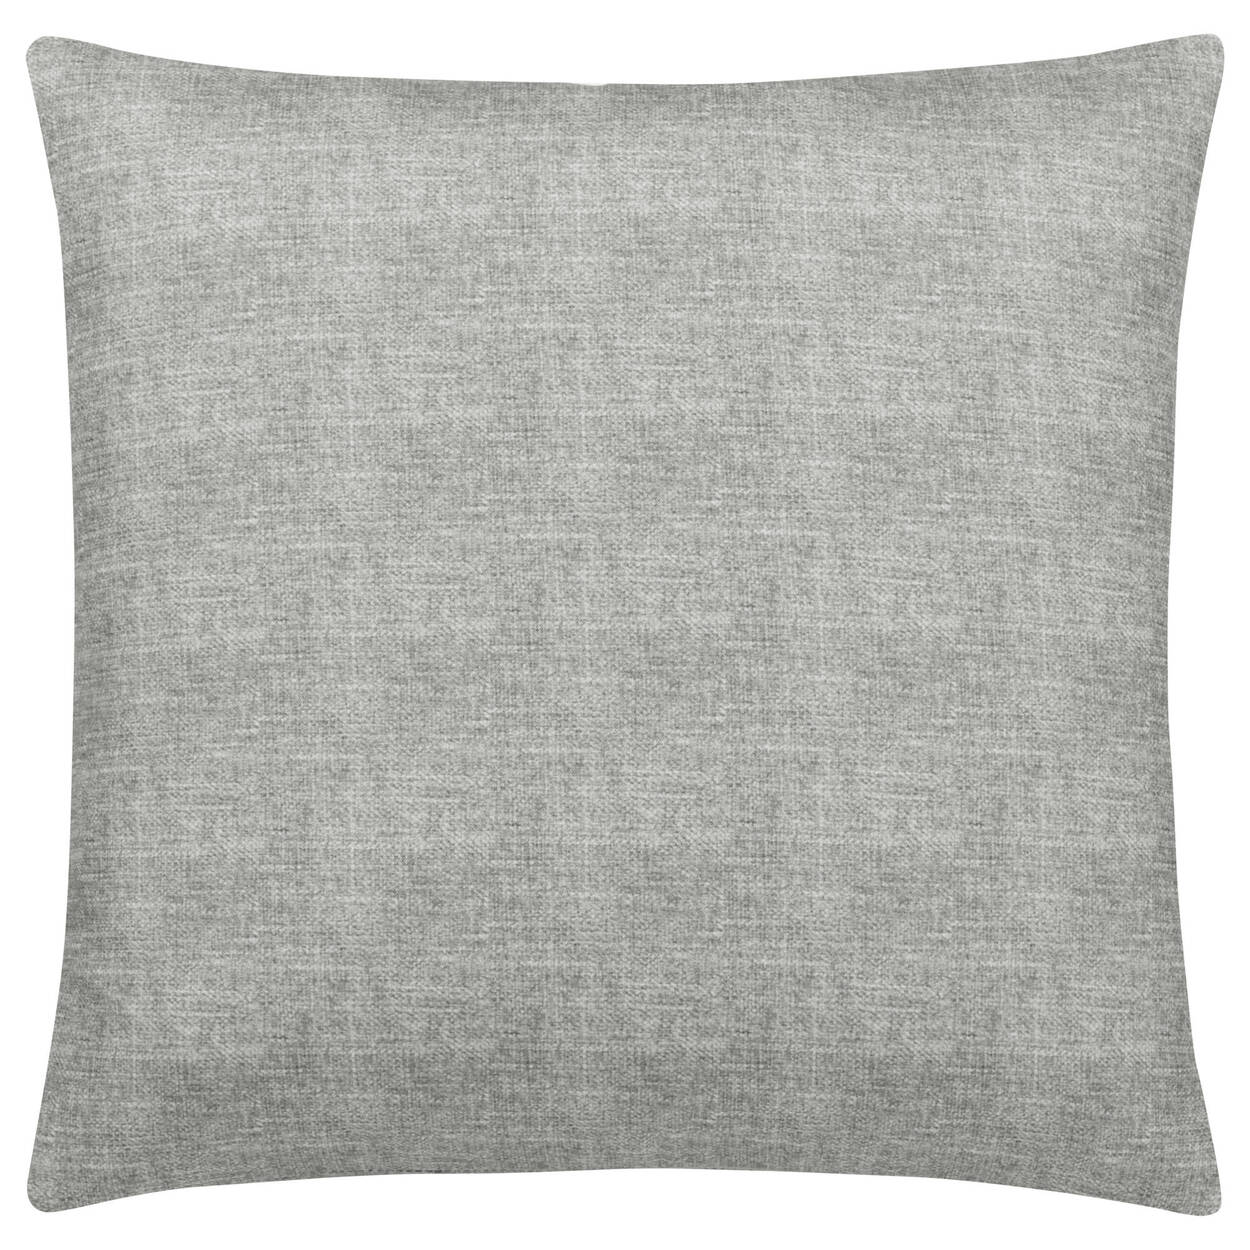 "Great in Bed Decorative Pillow Cover 18"" X 18"""